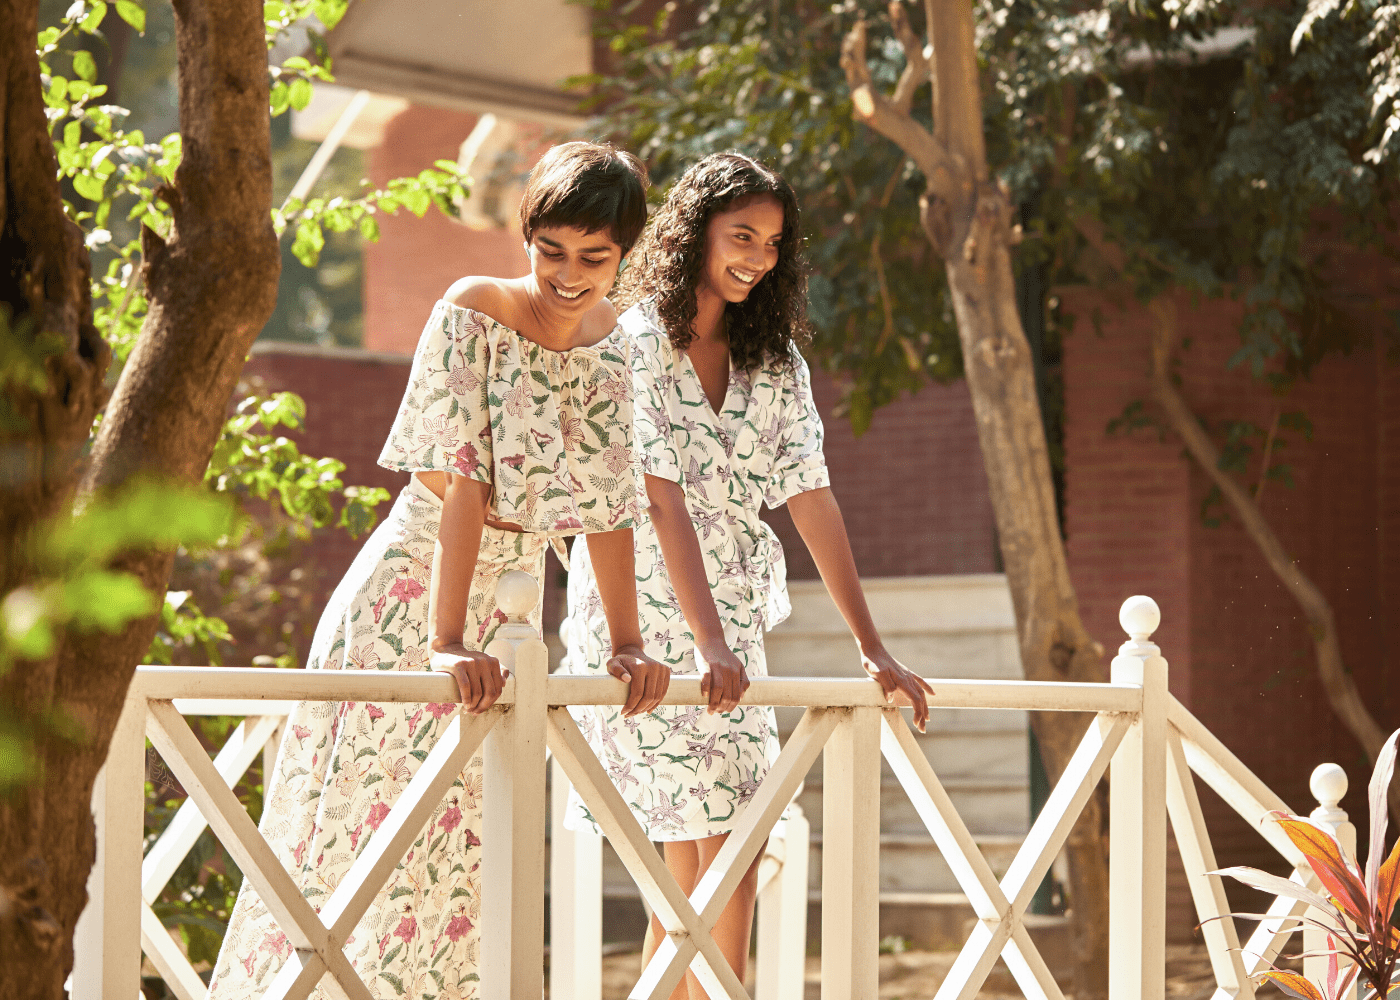 Heading out post-CB? Dress your best with new collections from these local labels